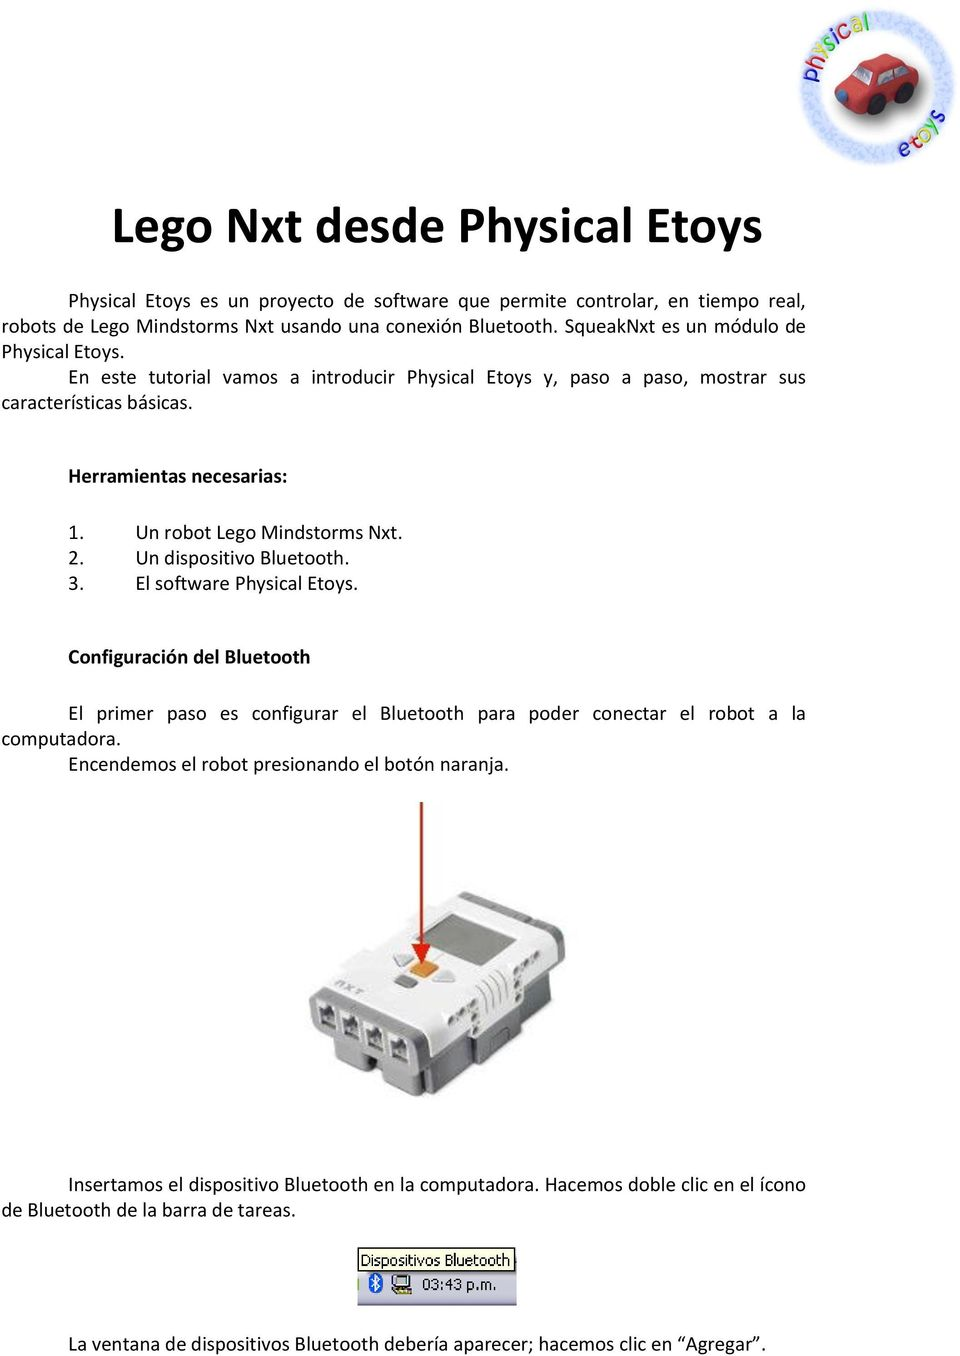 Un robot Lego Mindstorms Nxt. 2. Un dispositivo Bluetooth. 3. El software Physical Etoys.